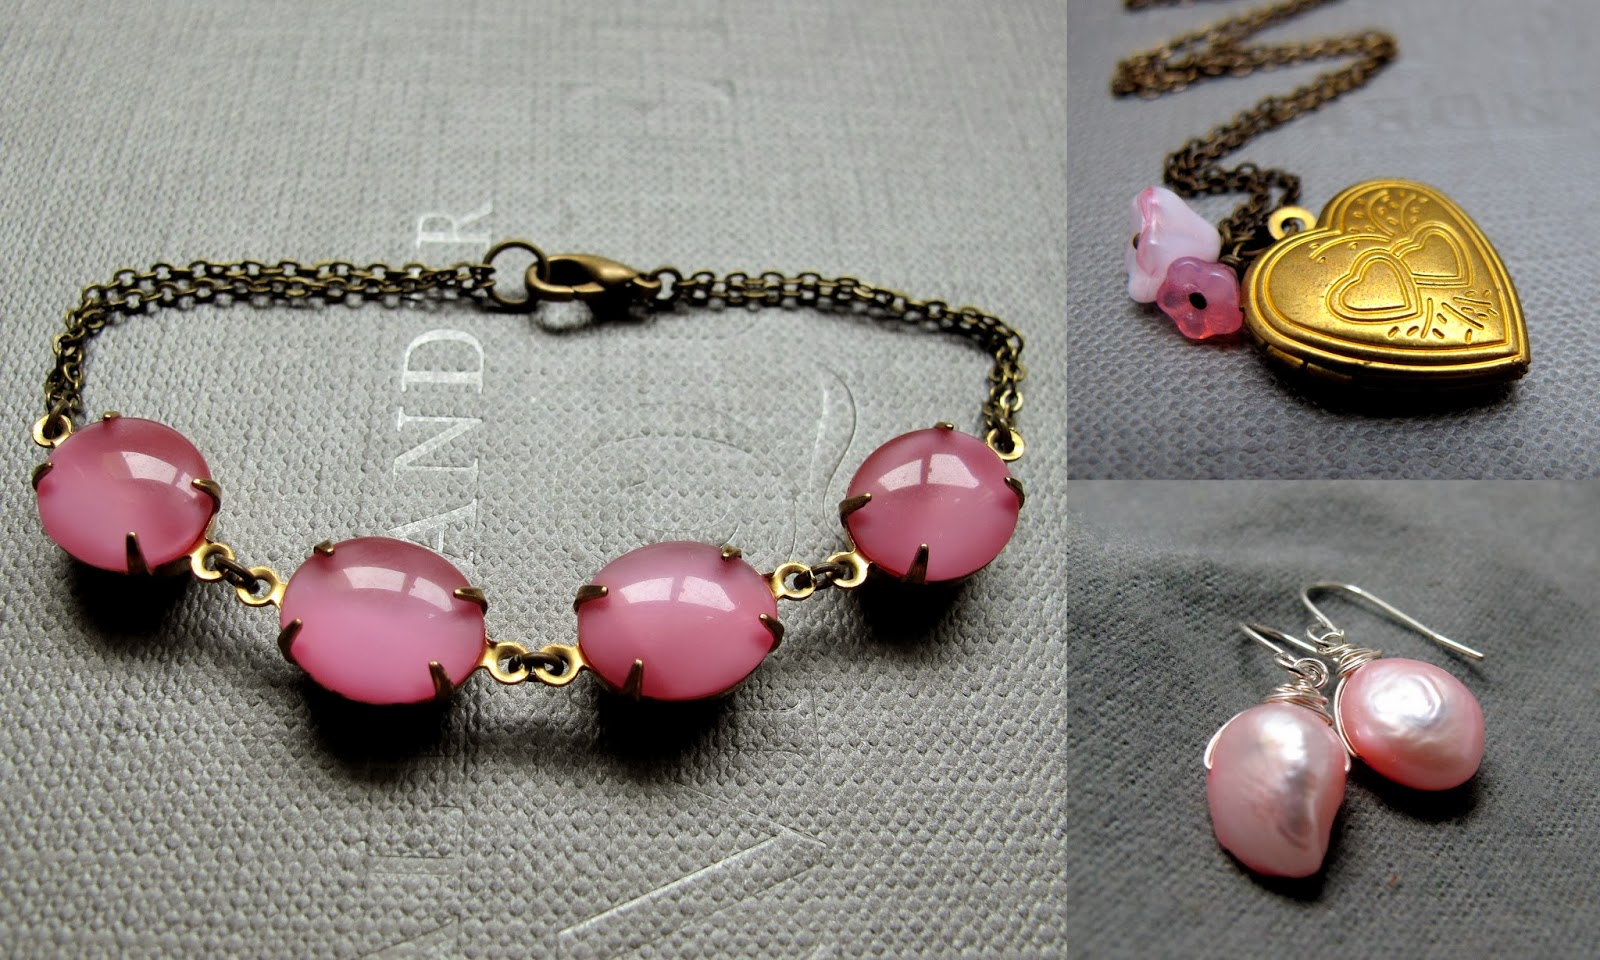 https://www.etsy.com/shop/Piggy/search?search_query=pink&order=date_desc&view_type=list&ref=shop_search